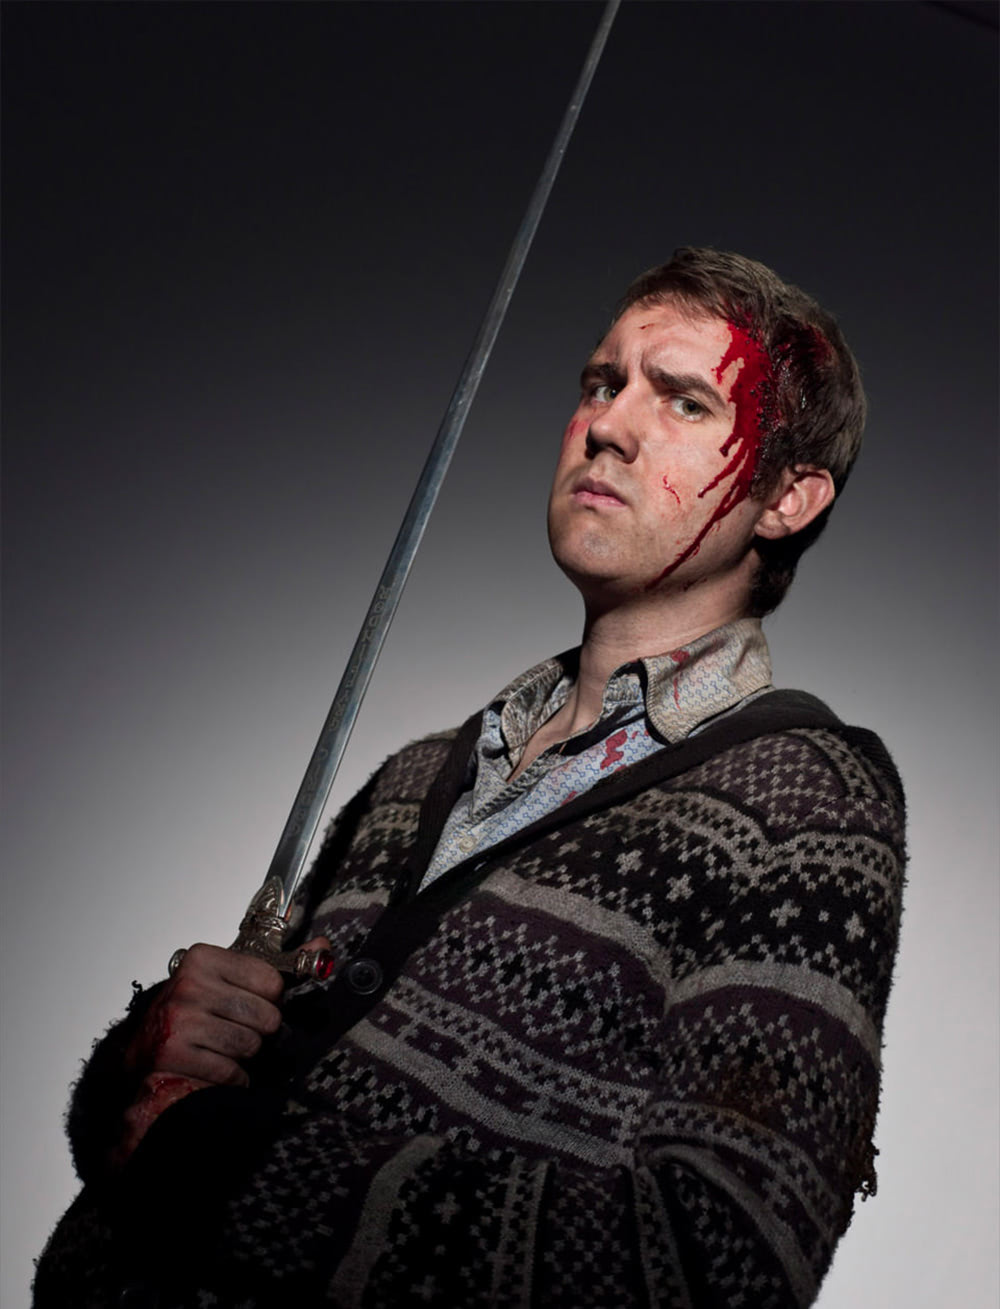 Neville Longbottom with the Sword of Gryffindor